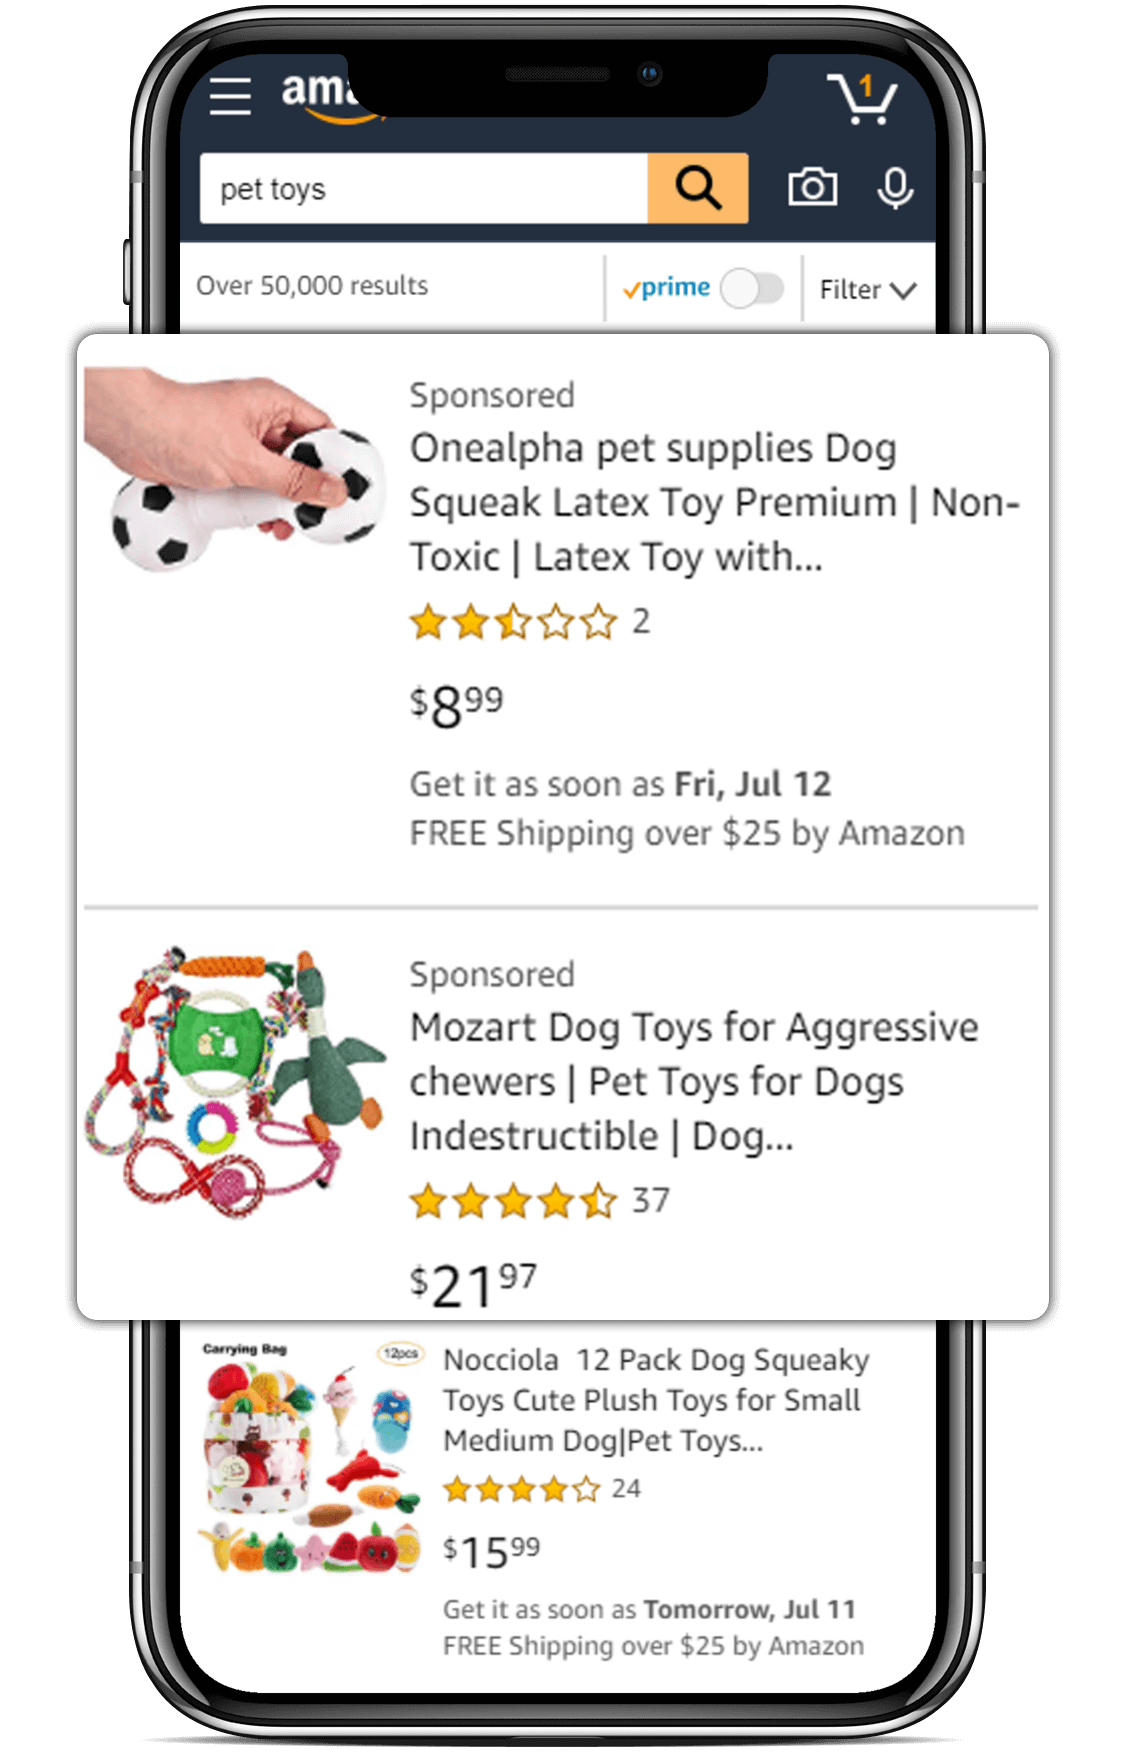 a search result for pet toys on amazon's mobile app